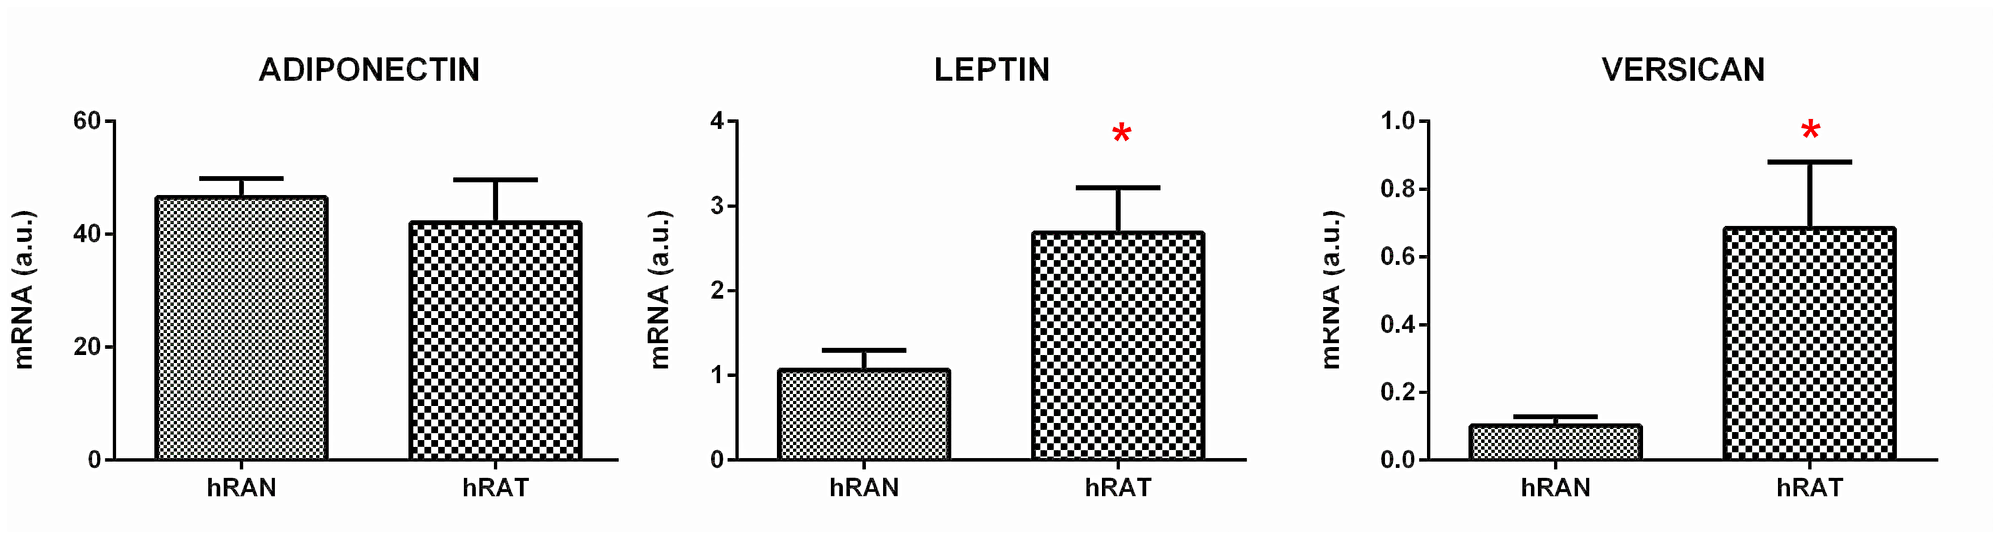 Relative fold expression of versican, adiponectin and leptin gene expression from hRAN and hRAT.